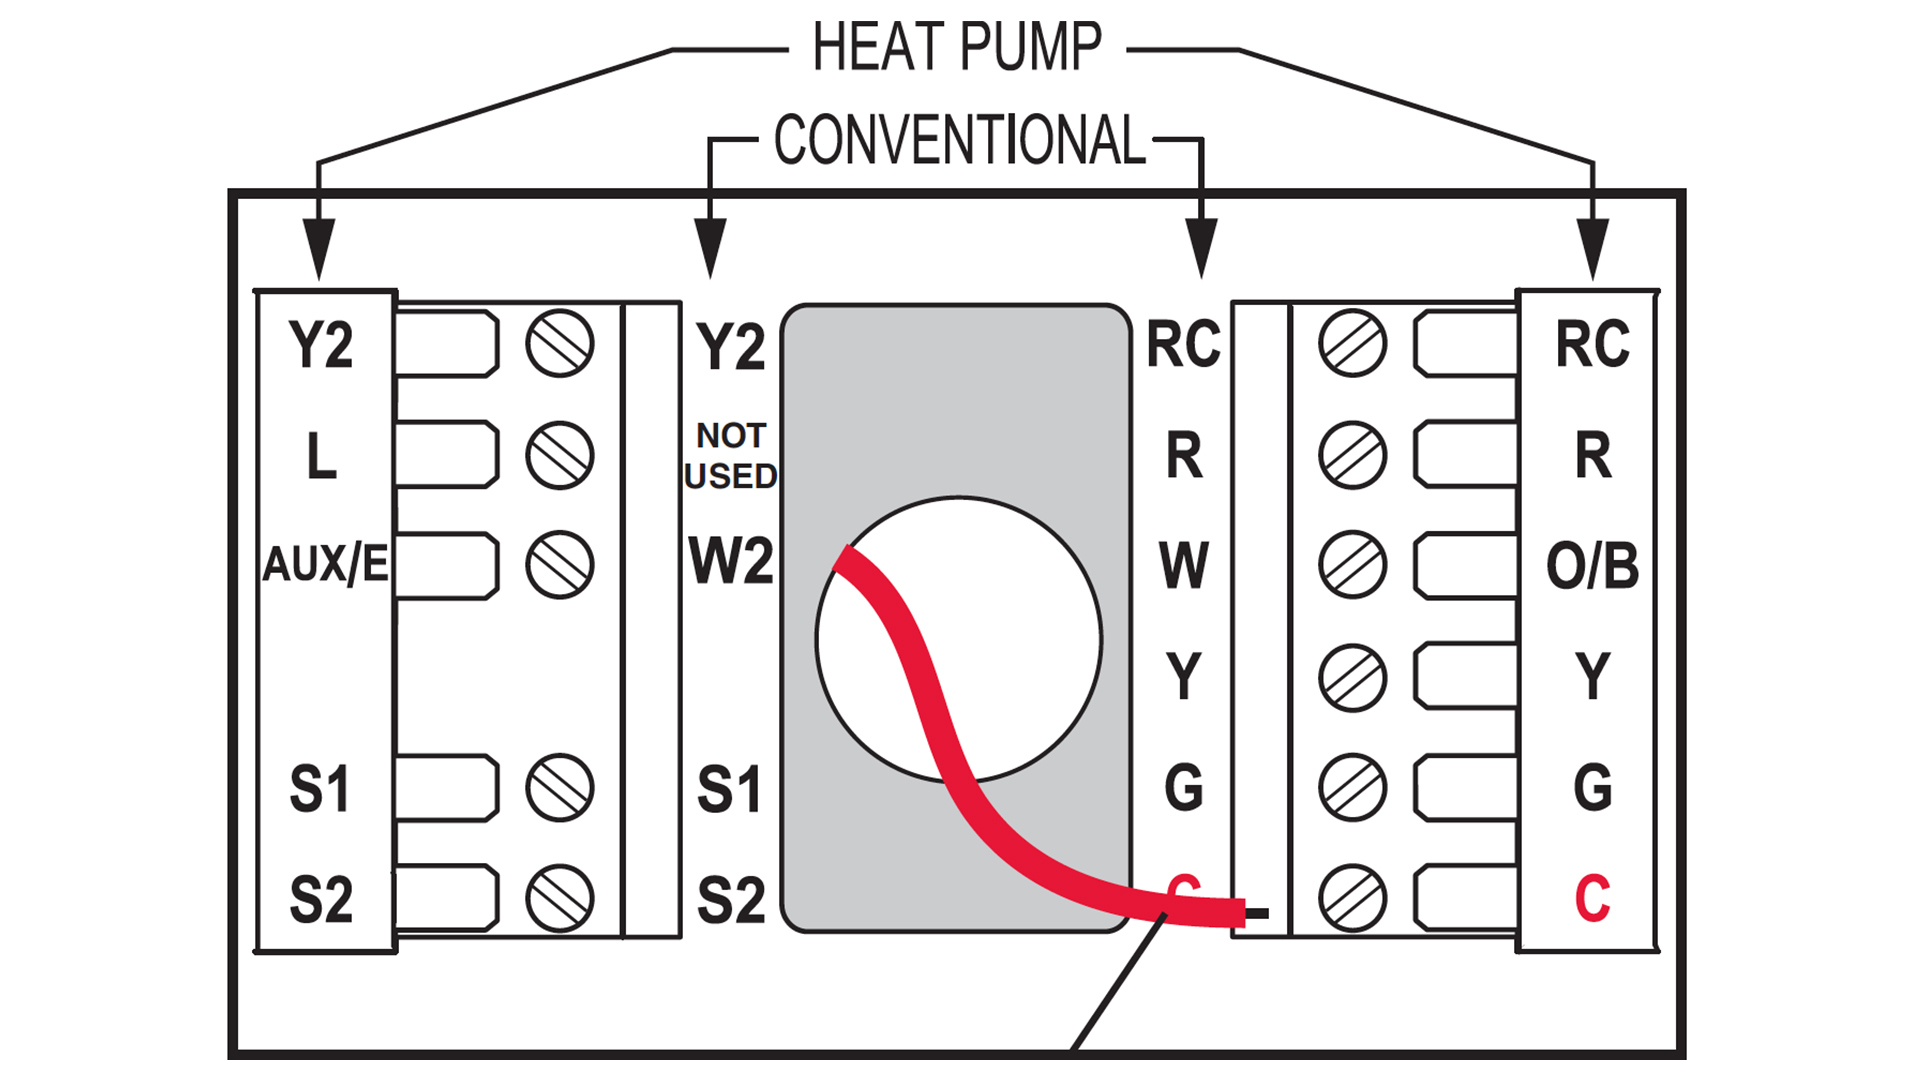 T Stat Wiring Diagram With Humidifier | Wiring Diagram - Nest Wiring Diagram For Humidifier